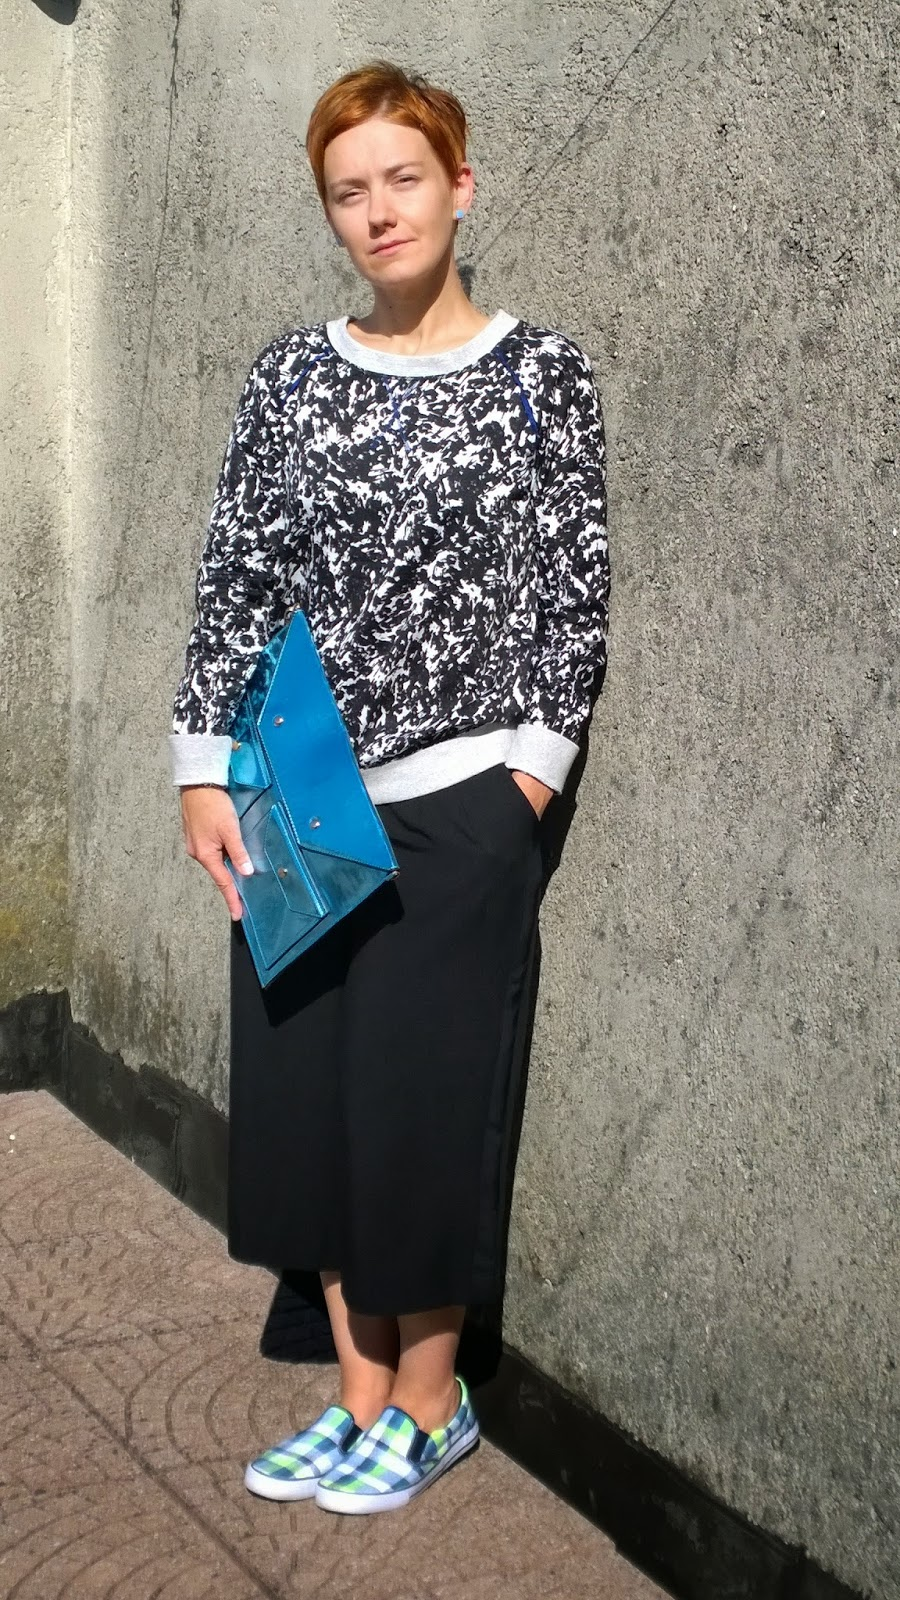 plaid pattern shoes, blue metallic clutch, black & white splash pattern sweater, culottes